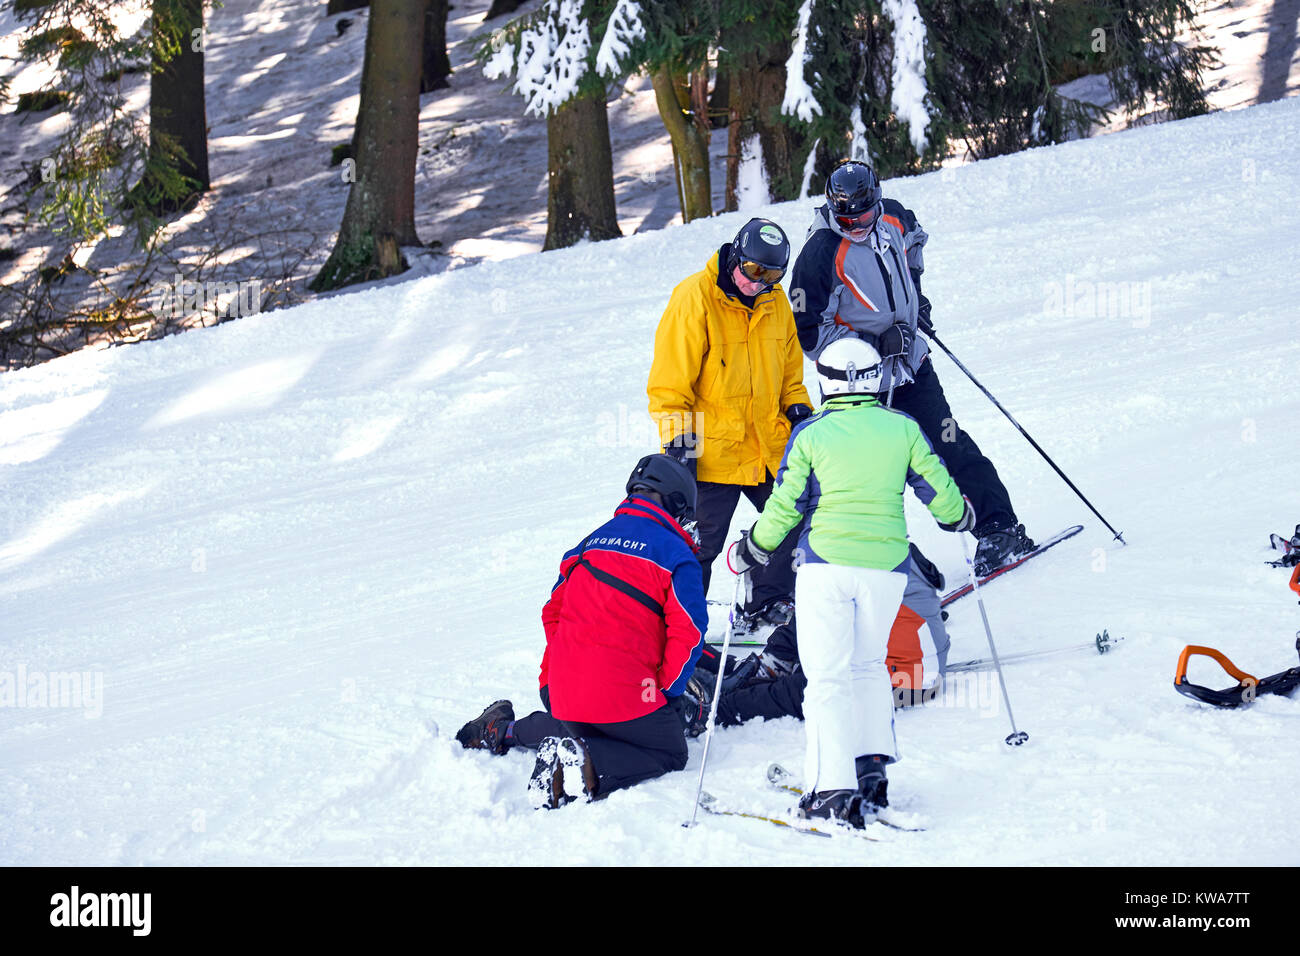 WINTERBERG, GERMANY - FEBRUARY 15, 2017: Rescue team looking at a woman's leg at on a ski slope at Winterberg - Stock Image